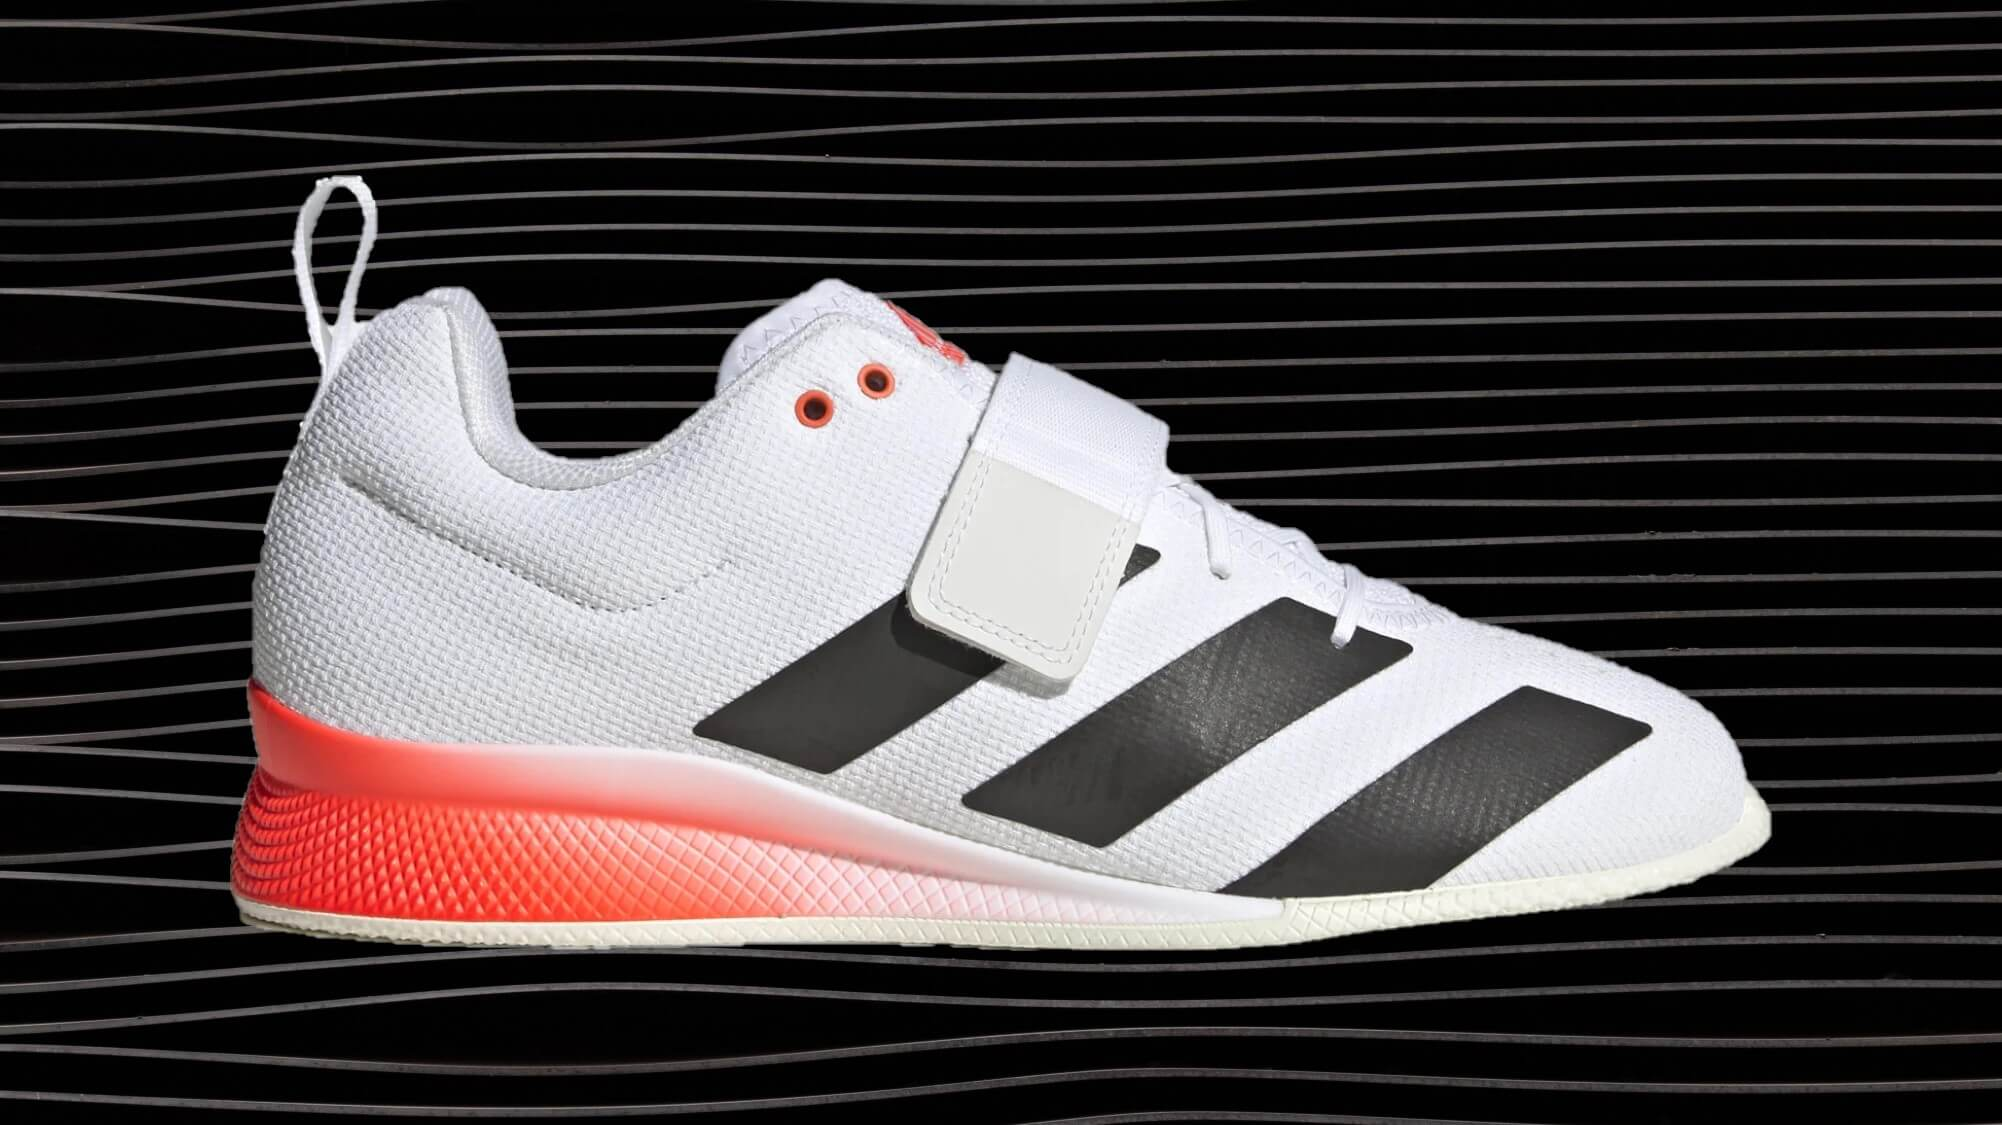 adidas Adipower Weightlifting II Shoe with limited Tokyo Olympics colors.